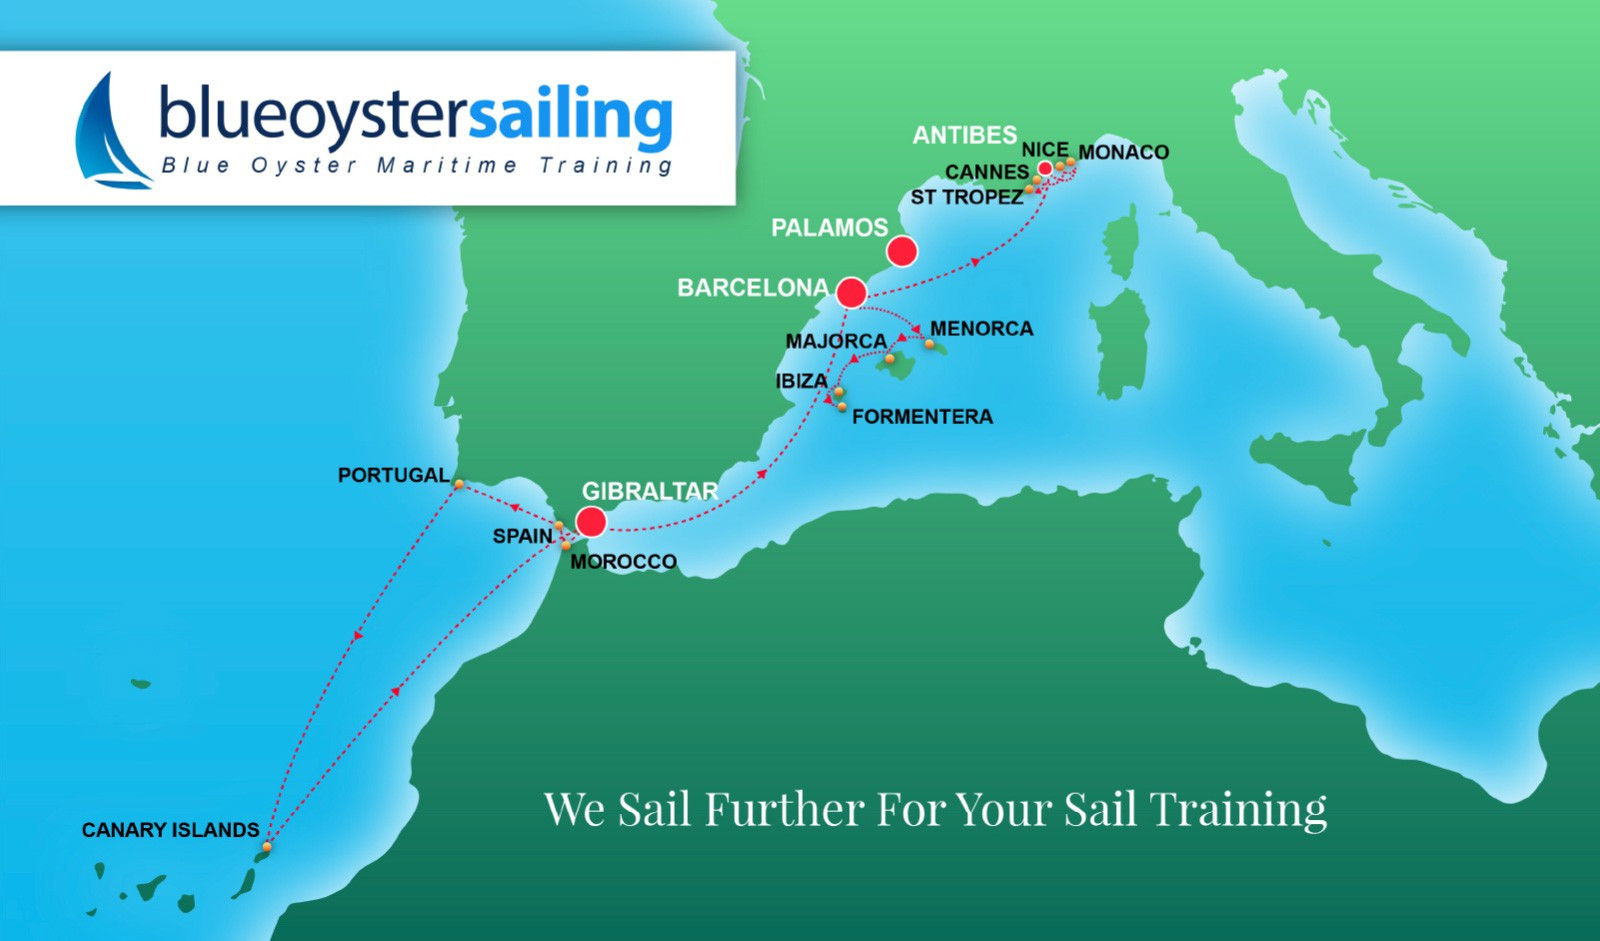 Blue Oyster Map Image